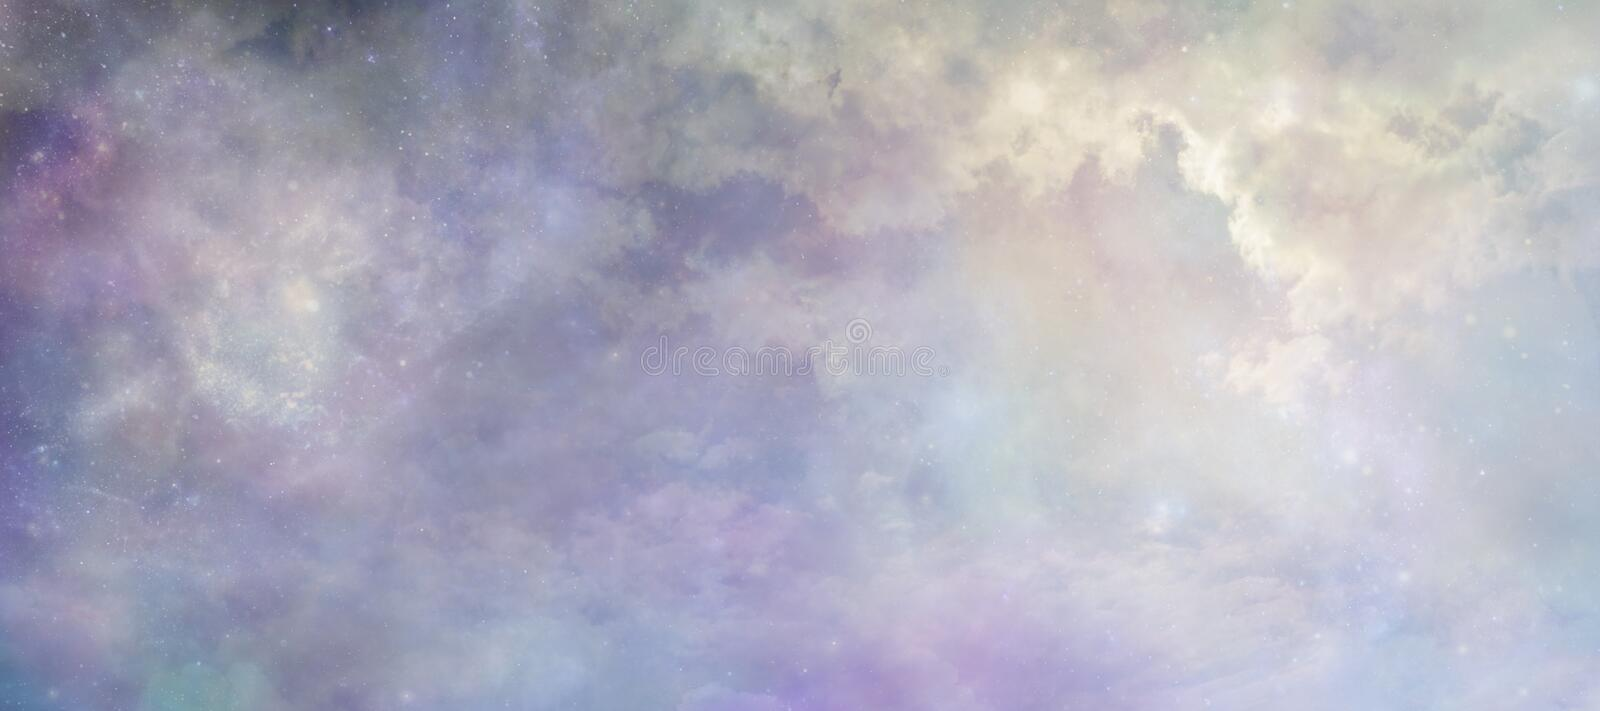 Heavens above concept background banner royalty free stock images